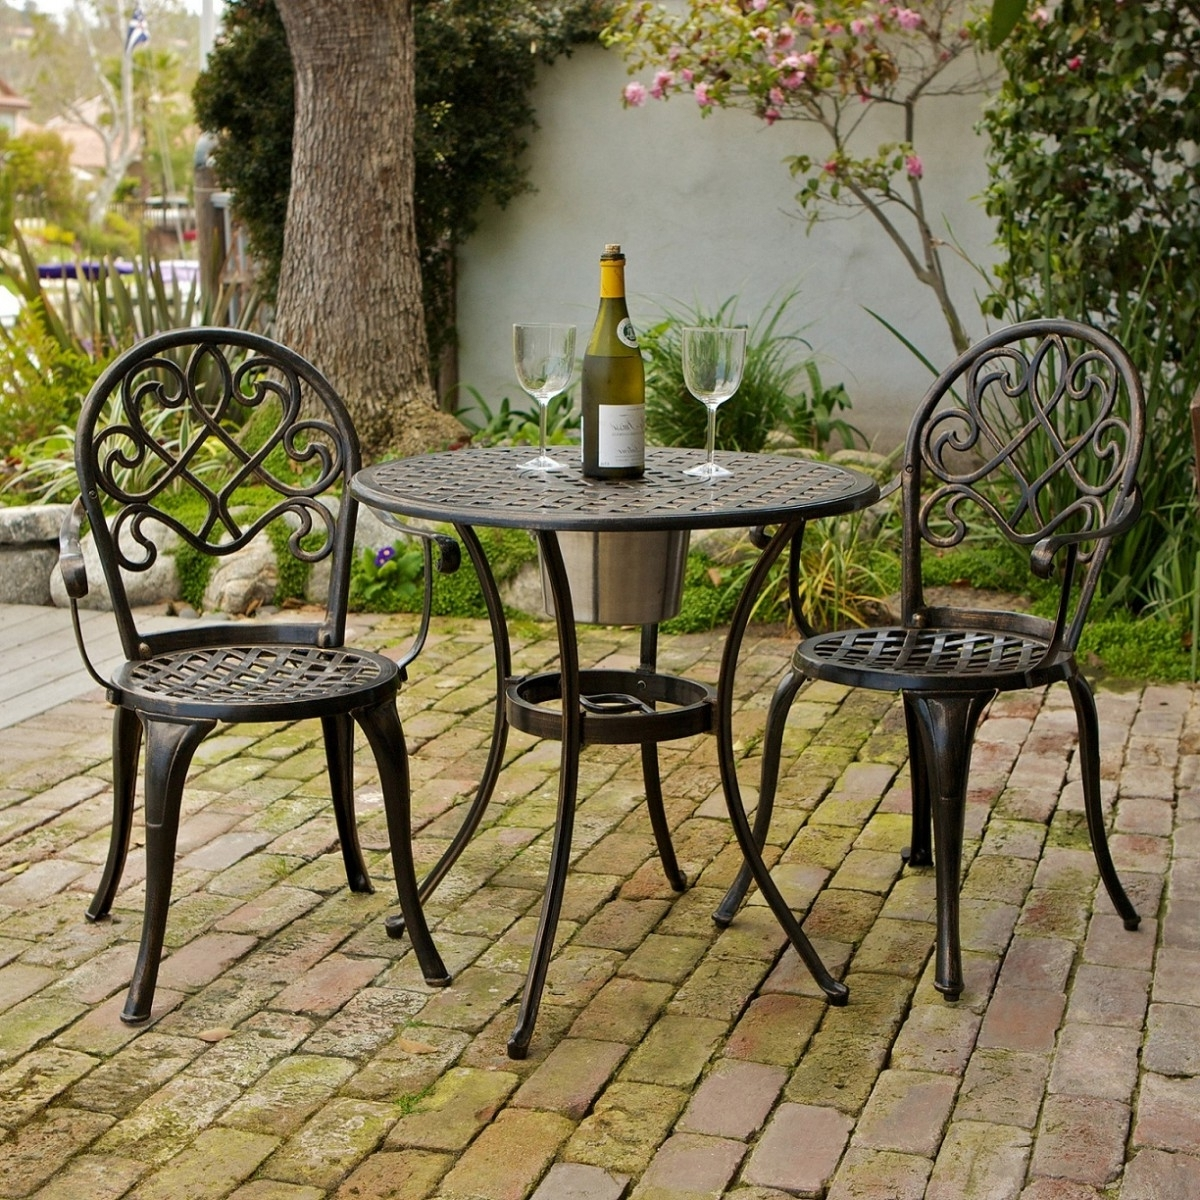 Cheap Patio Furniture Sets Under 200 Dollars, Back Yard Table – Coho In Well Known Patio Conversation Sets Under  (View 10 of 15)